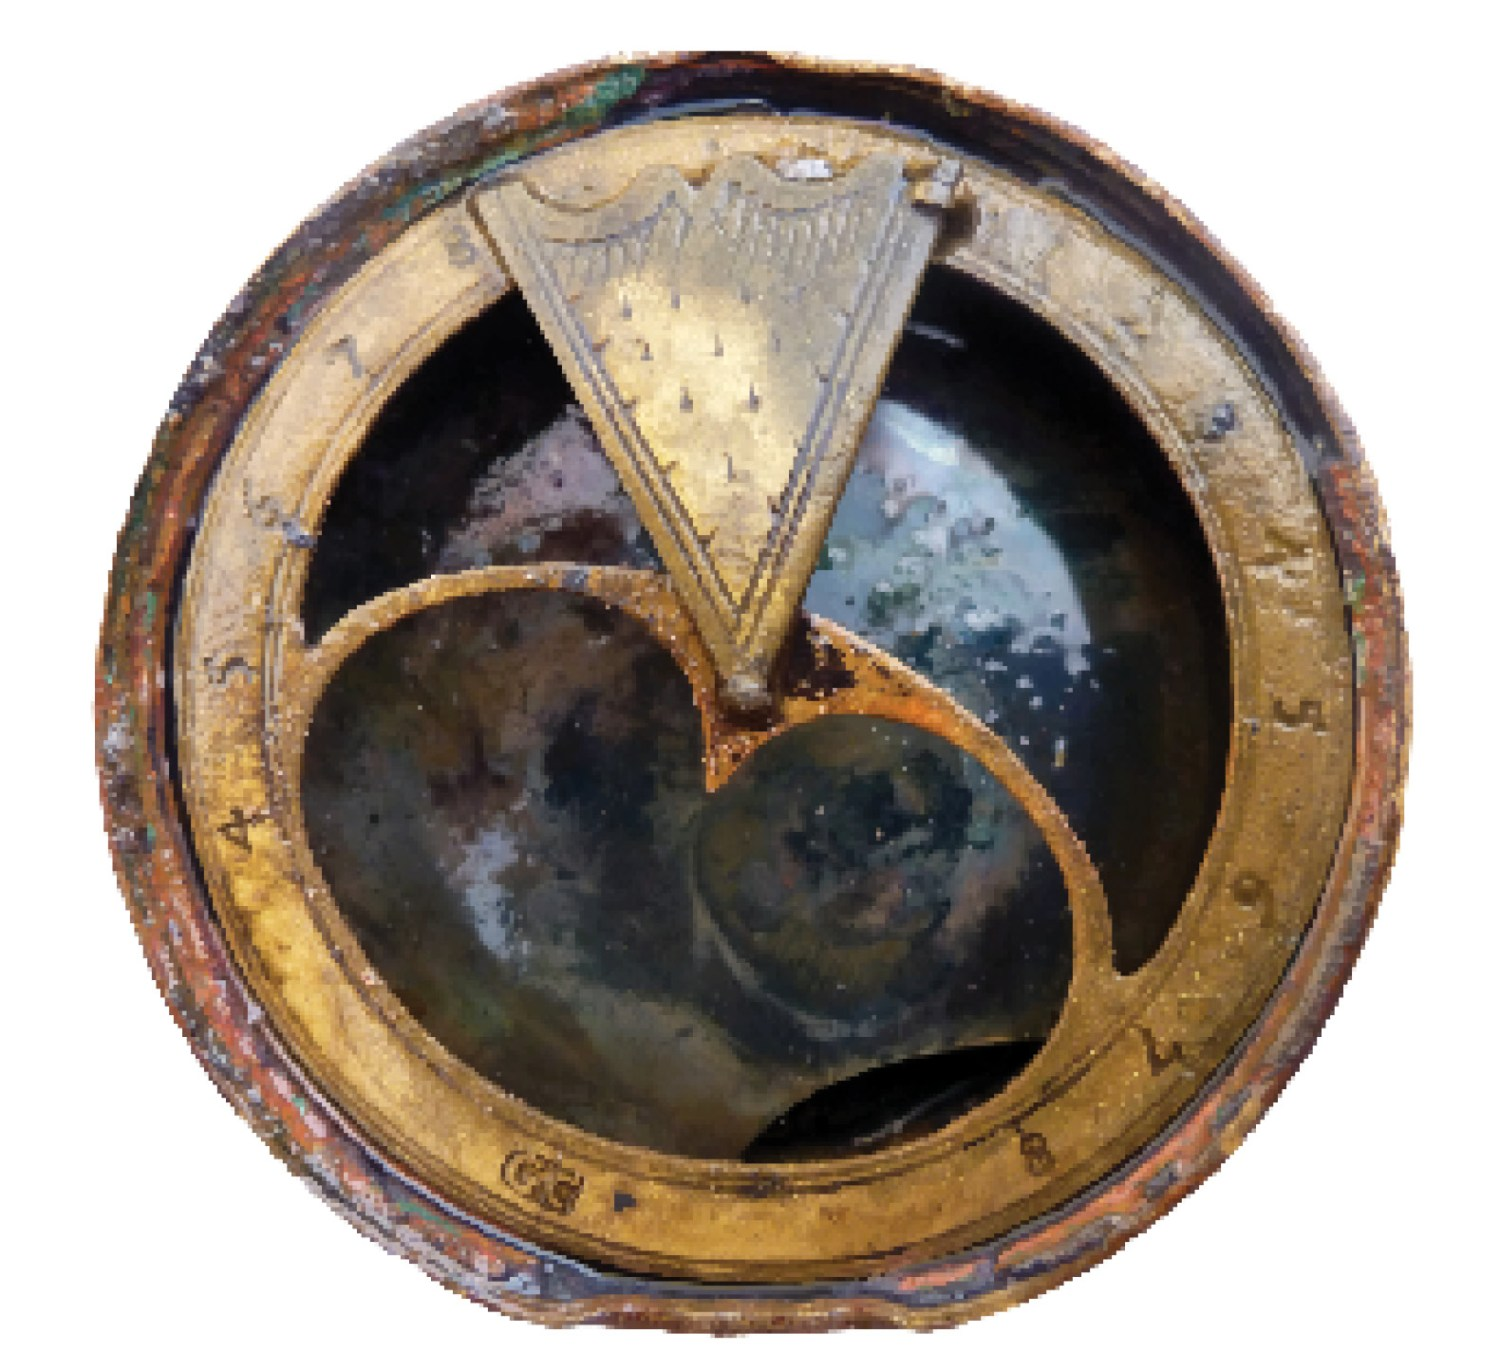 right The wreck of the London is a 17th-century time capsule, preserving a wealth of artefacts illuminating maritime life aboard the ill-fated warship among them, this sun dial.